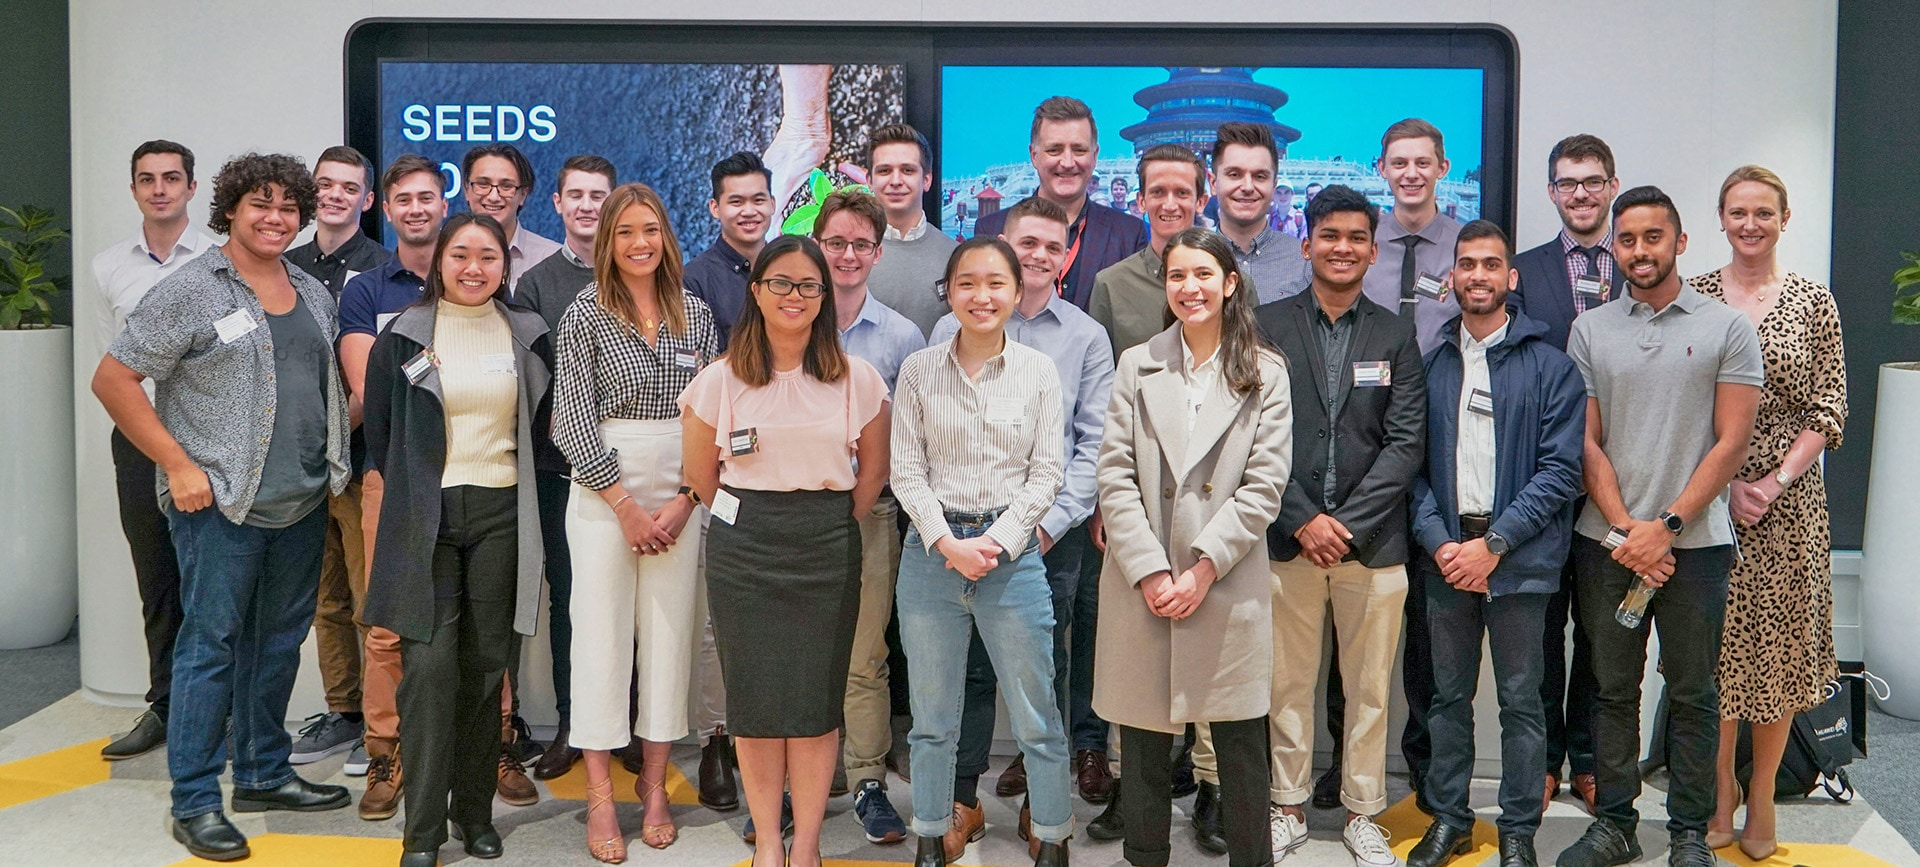 Huawei Australia Seeds for the Future 2019